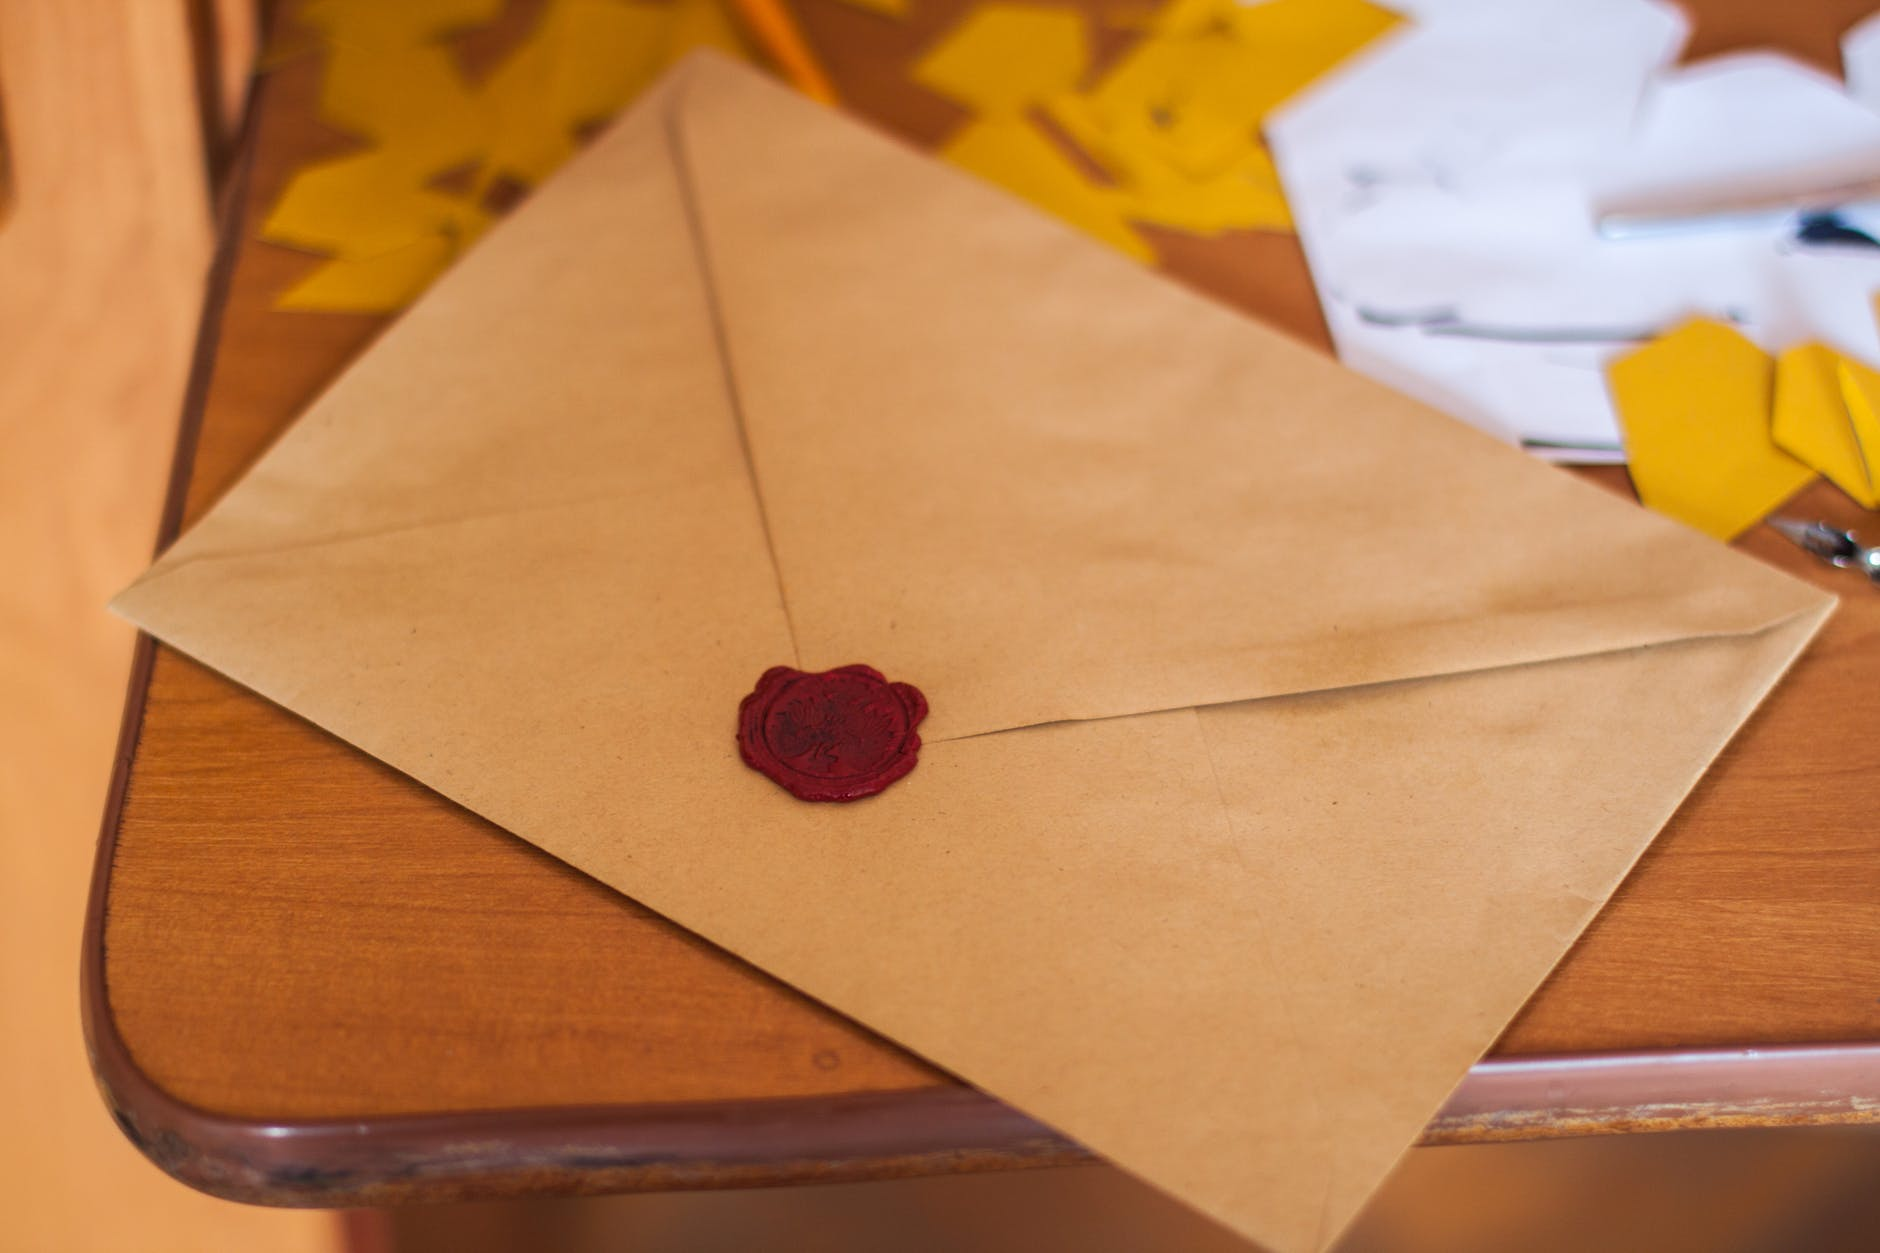 When Freda read the letter, she had mixed feelings | Source: Pexels